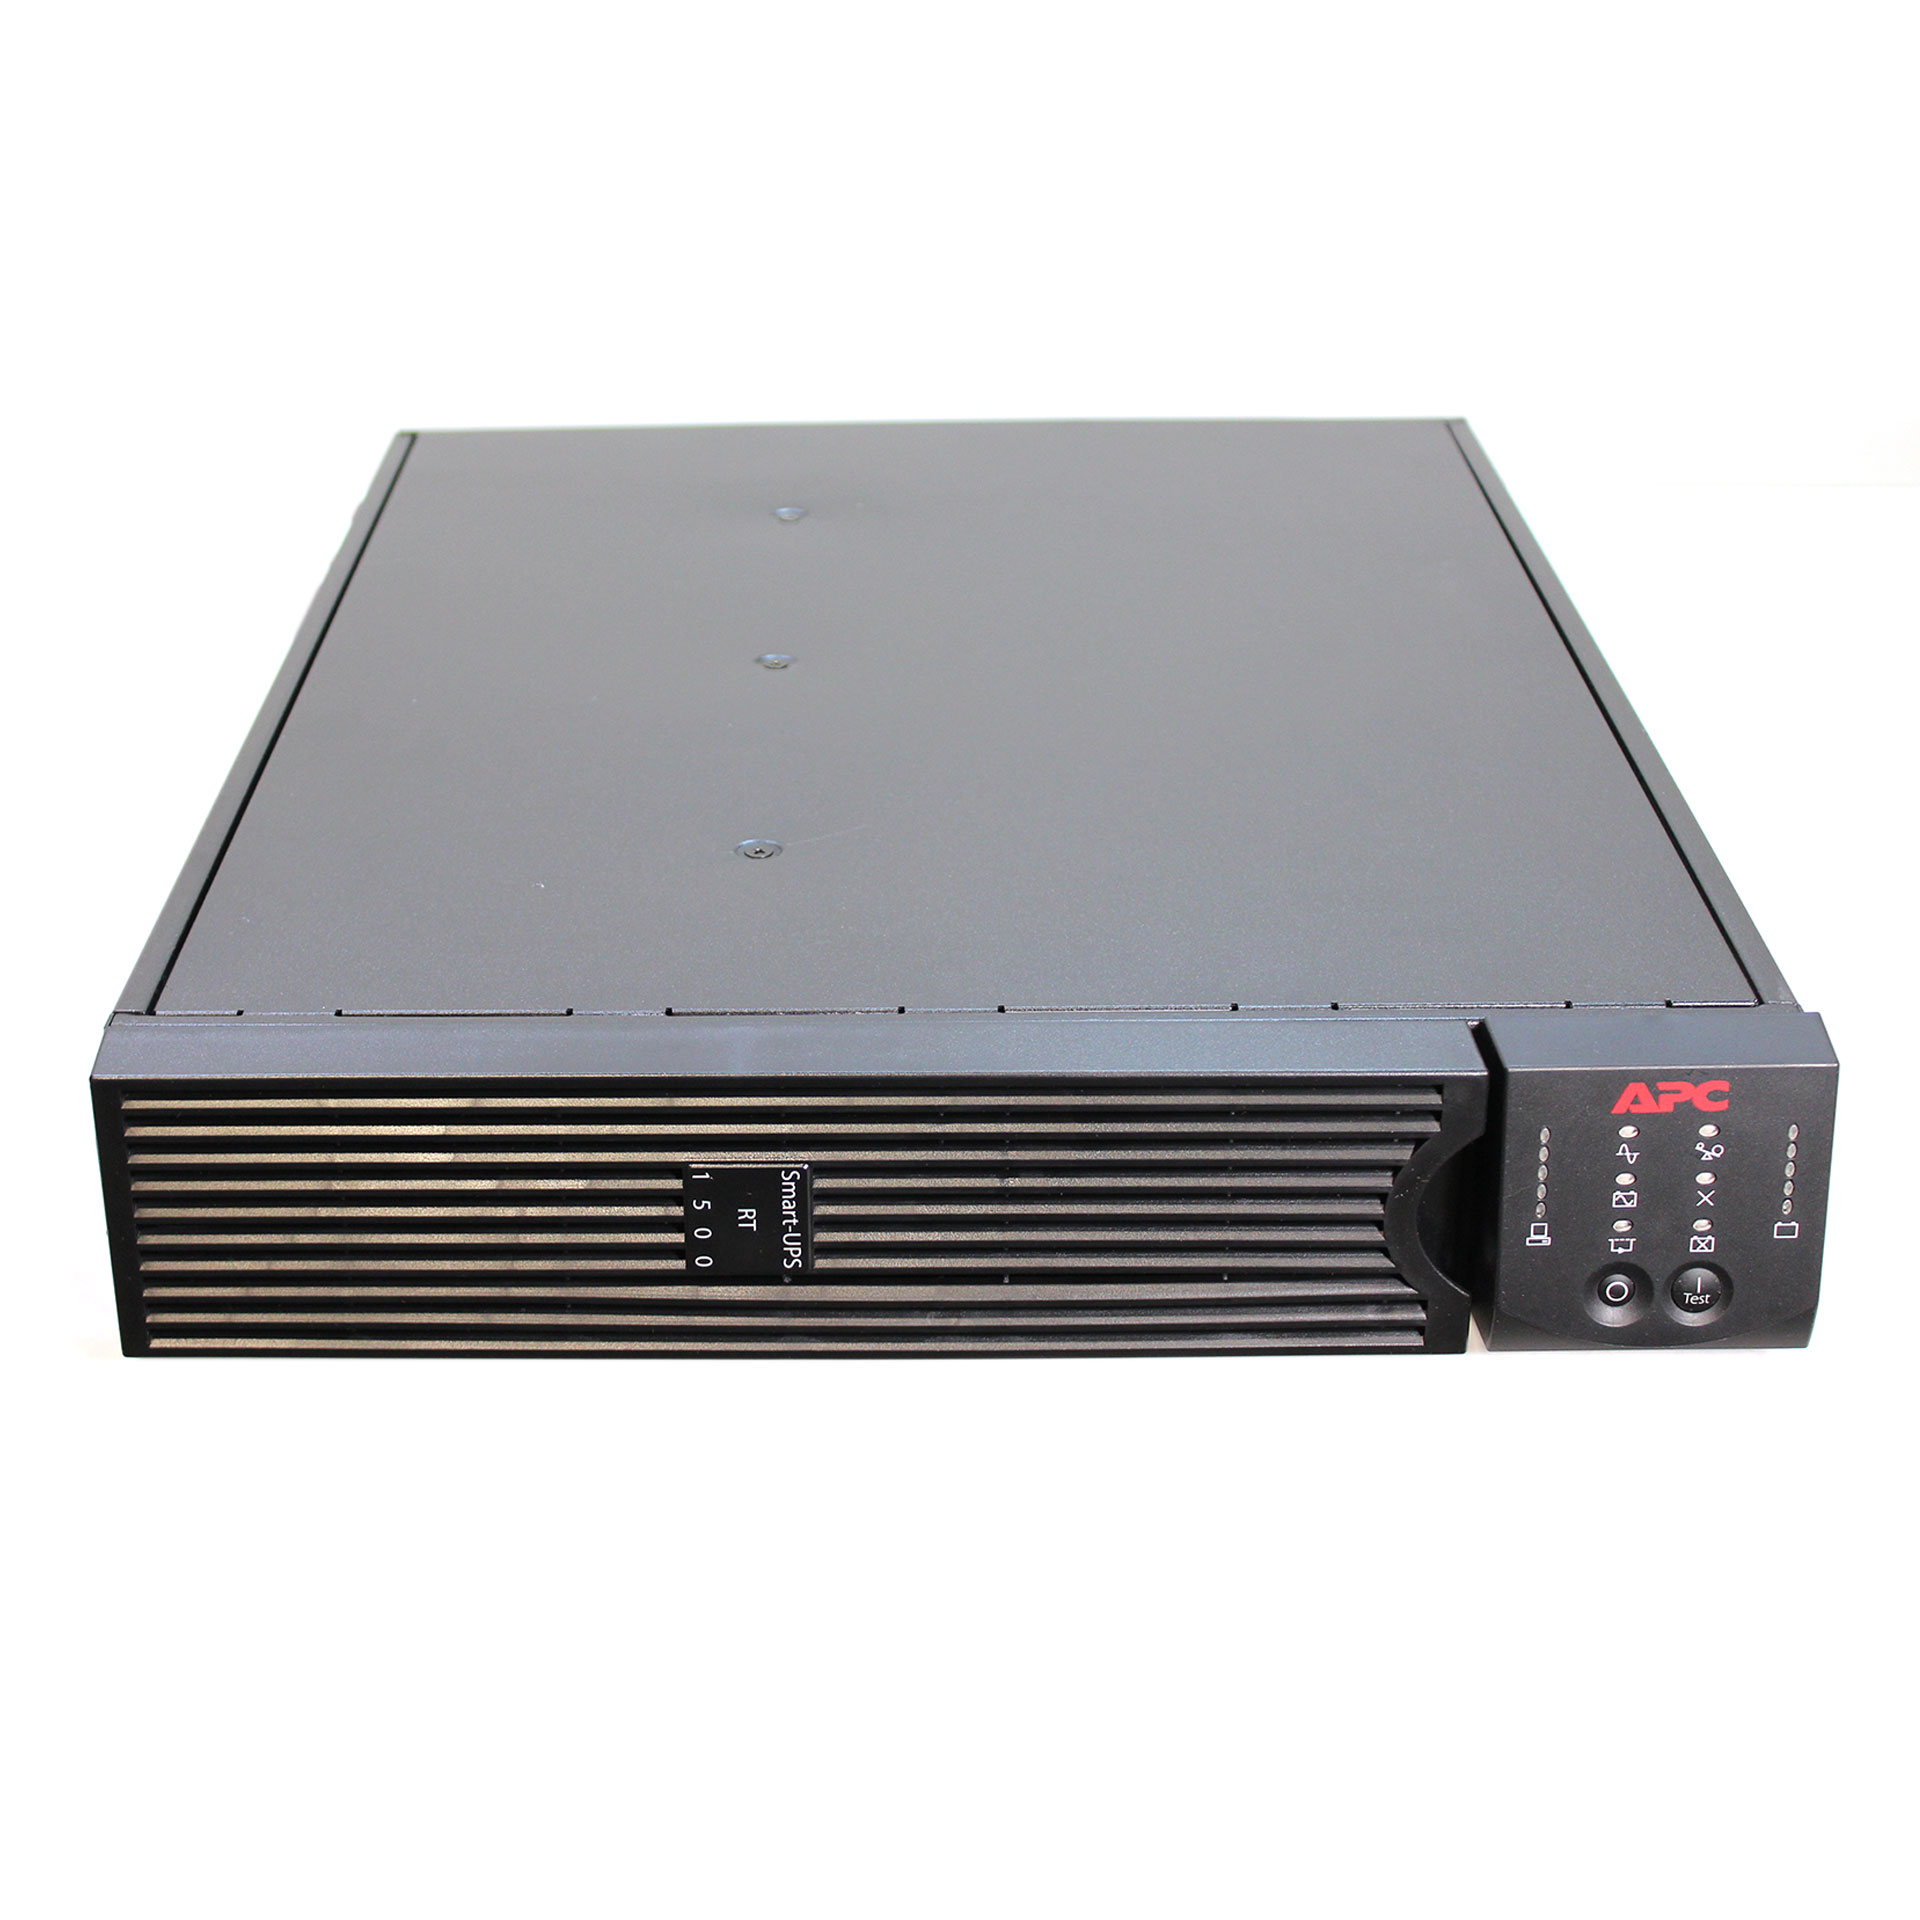 APC SURTA1500RMXL2U 1500 VA 1050 Watts 6 Outlets Rack Tower UPS